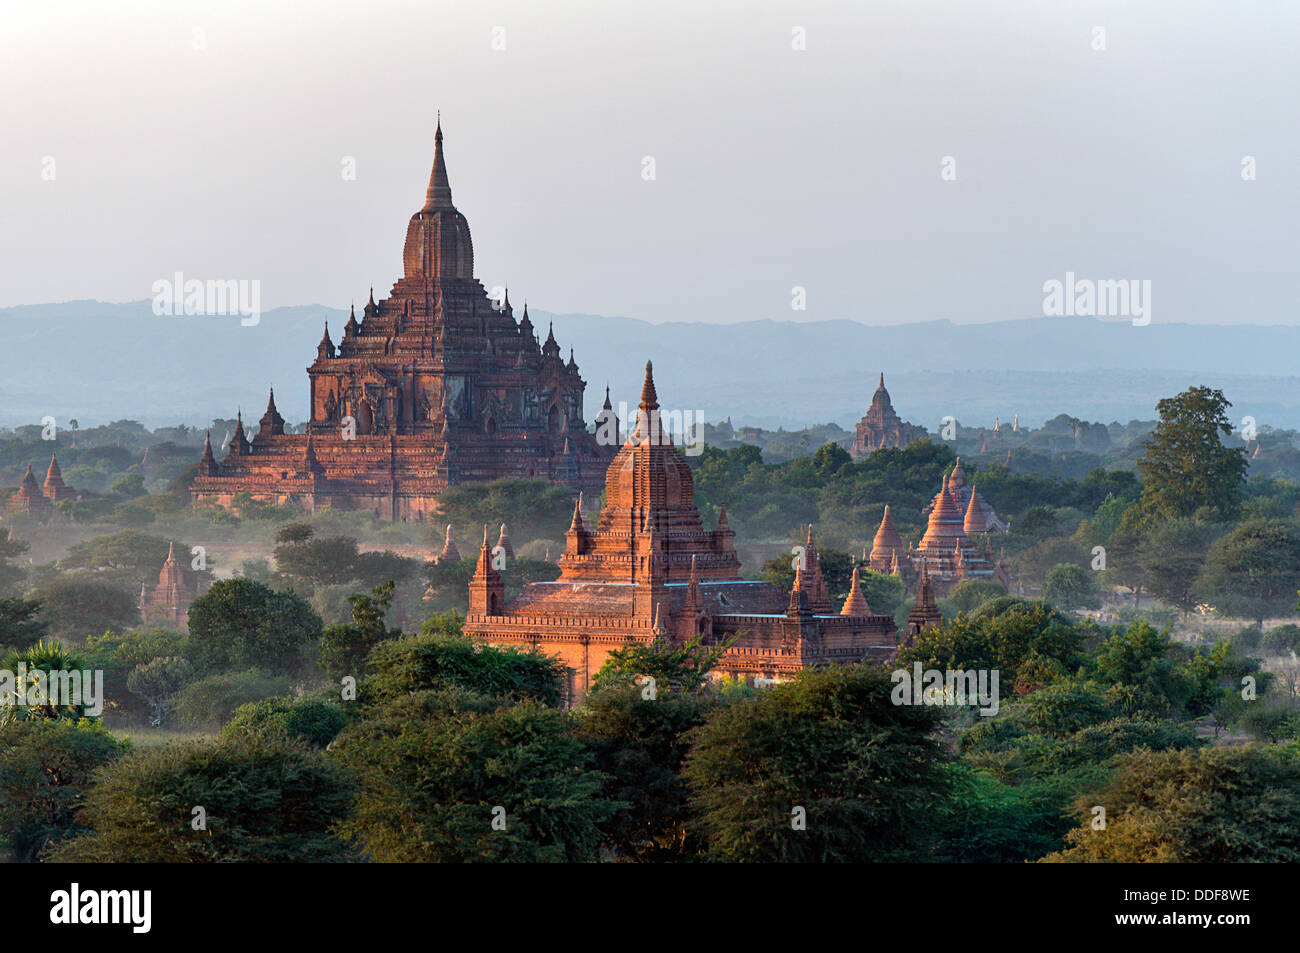 Stupas, monasteries and pagodas in Bagan Archaeological Zone Myanmar - Stock Image